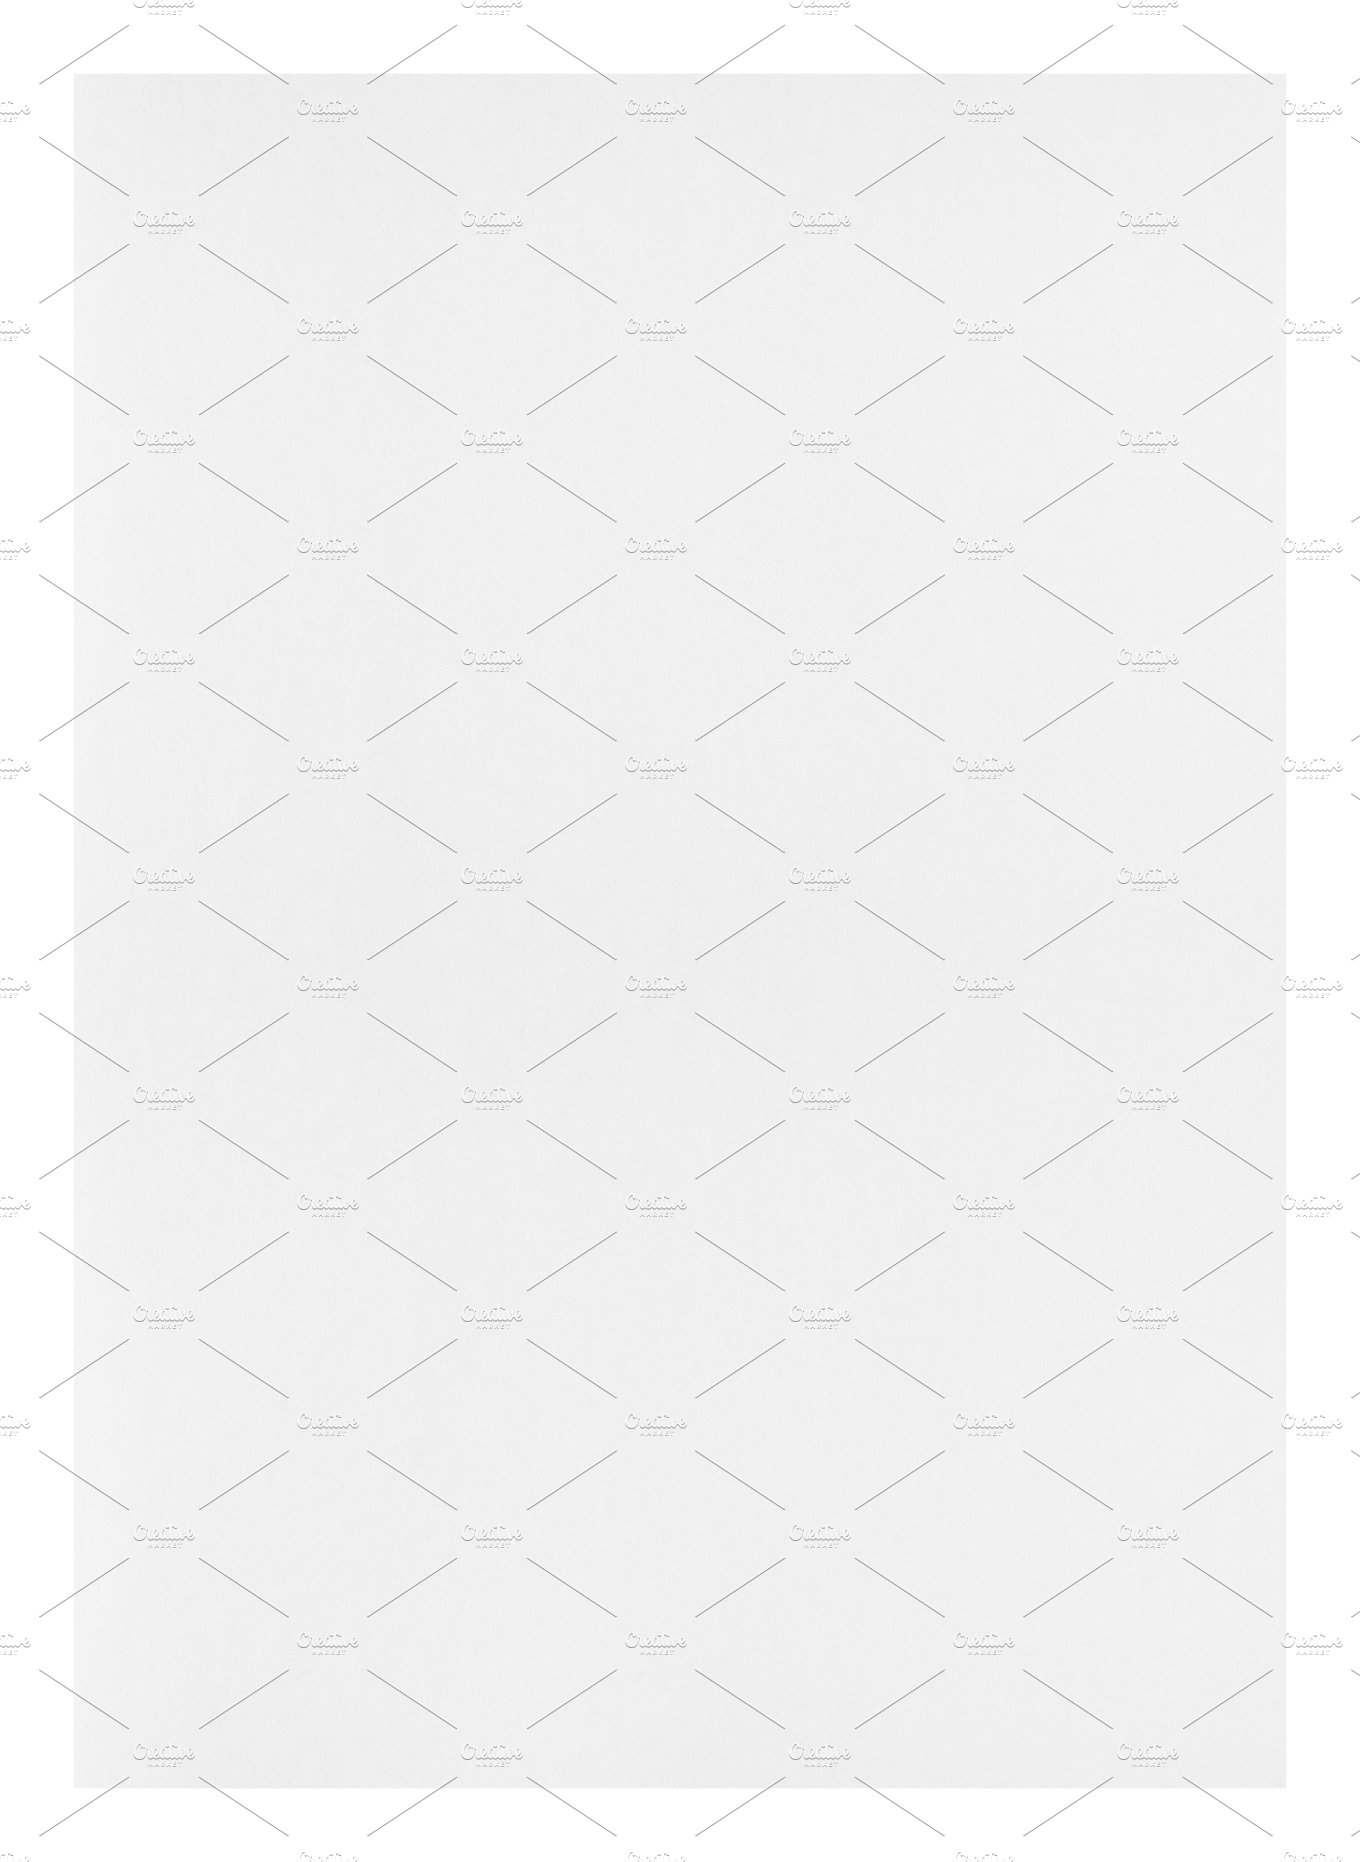 Paper sheet isolated on white ~ Abstract Photos ~ Creative